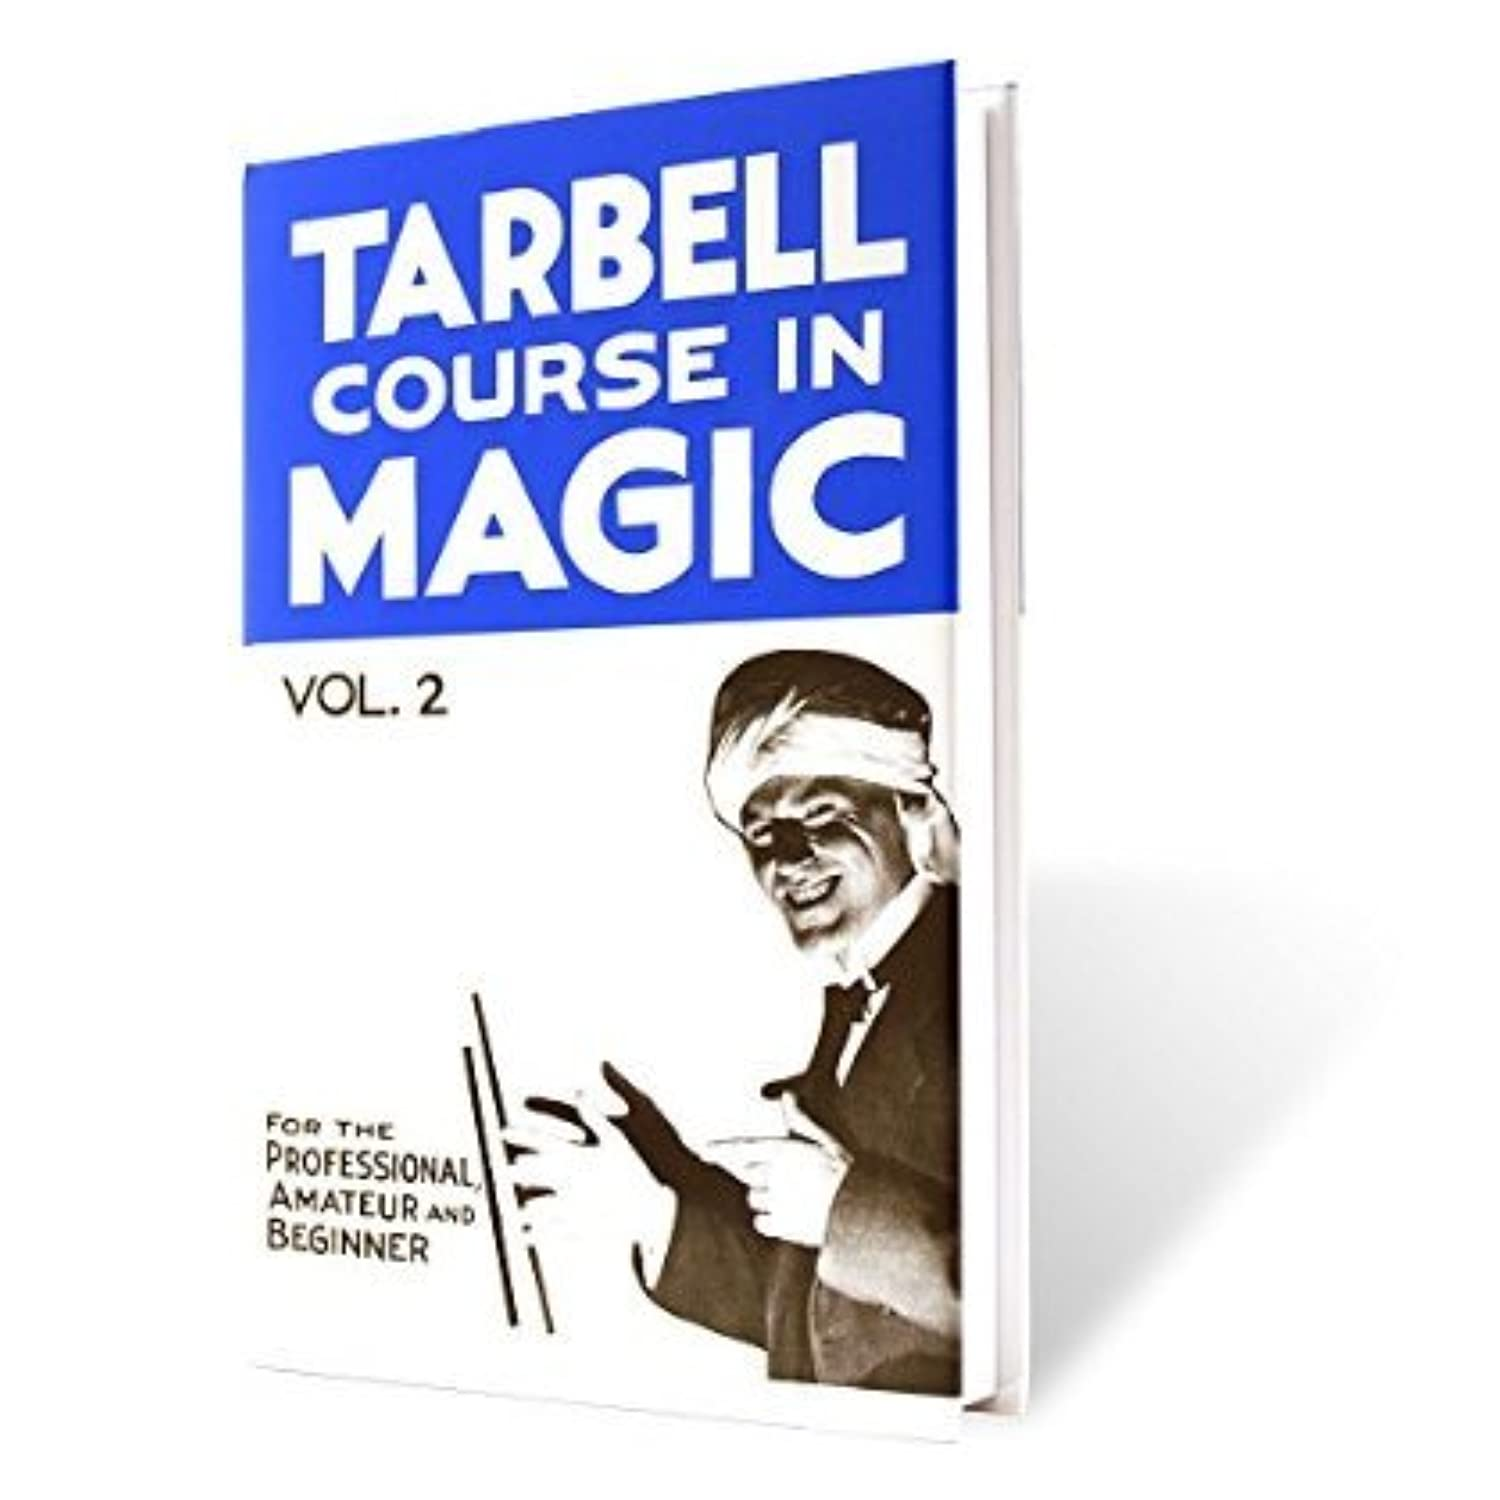 MMS Tarbell Course of Magic Volume 2 - Book おもちゃ [並行輸入品]